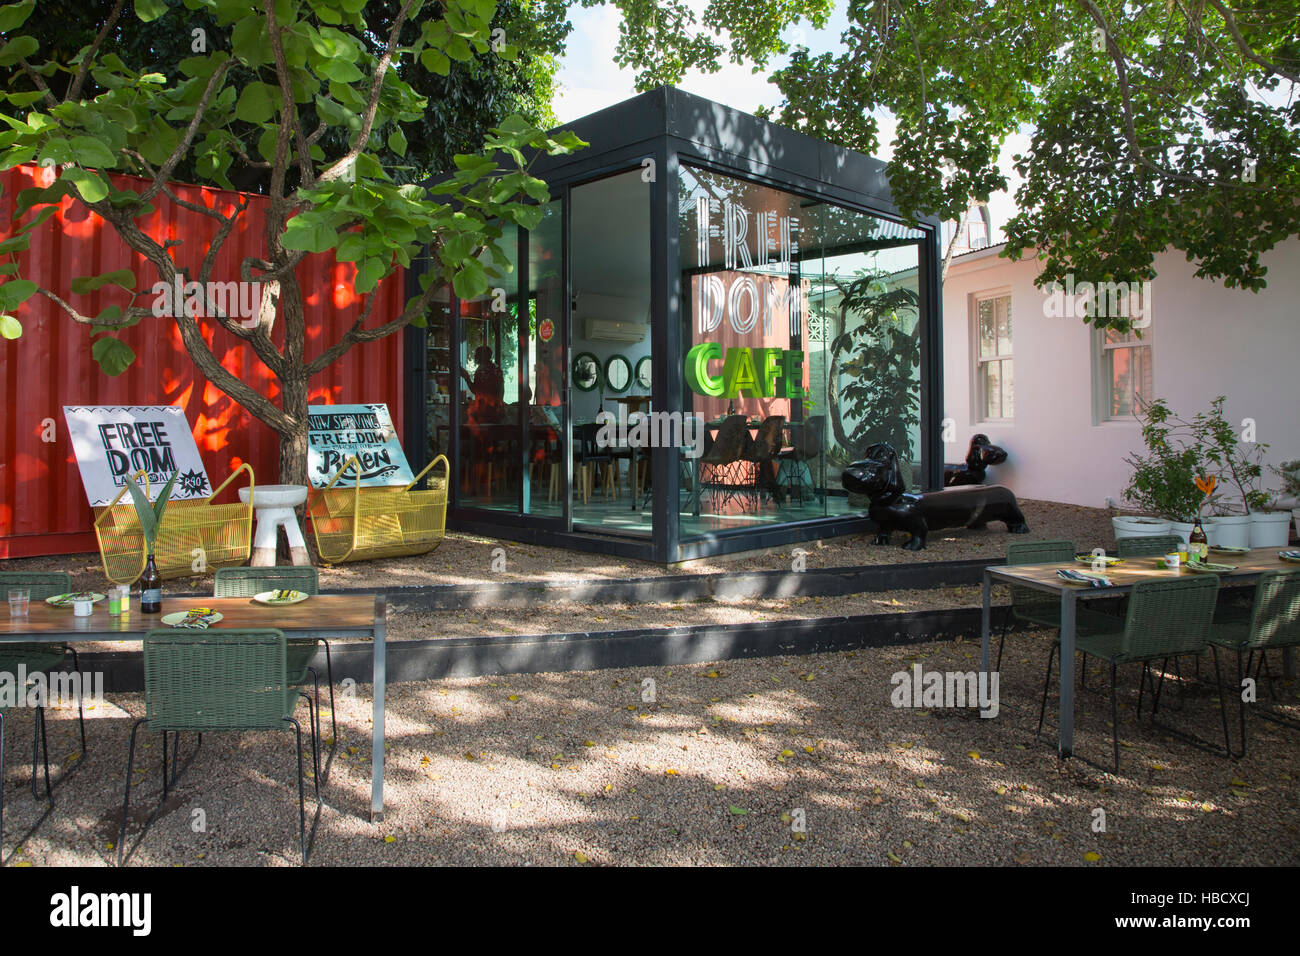 Freedom cafe at Concierge Boutique Bungalows, Durban, KwaZulu-Natal, South Africa - Stock Image